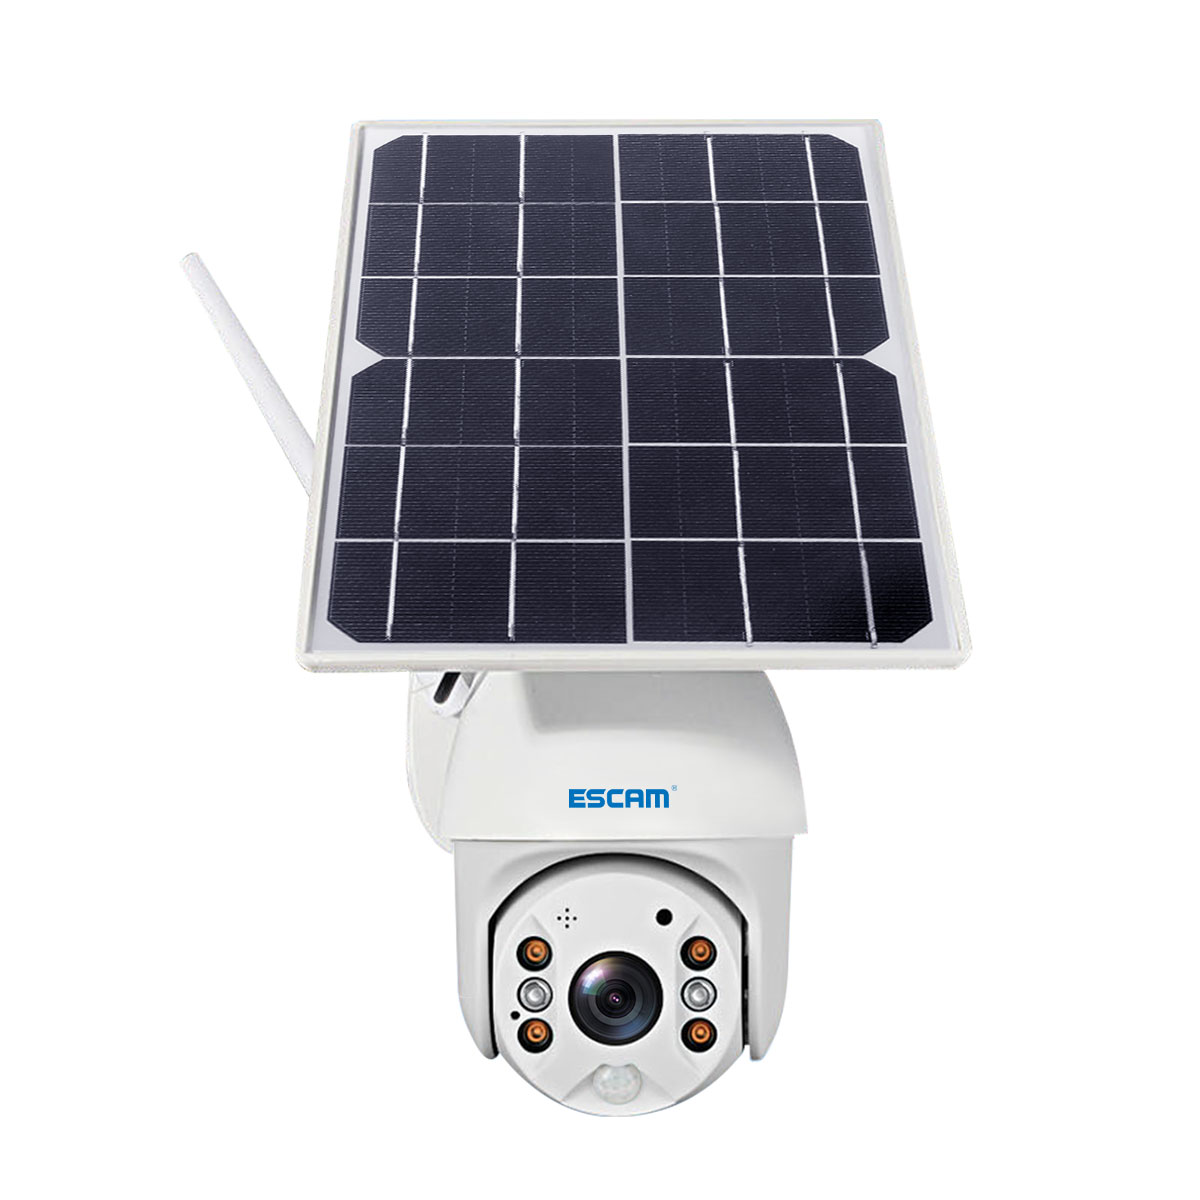 lowest price Solar Panel Solar Siren SJ1 for G19 G18 W18 8218G W1 GSM Alarm System Security with Flashing Response Sound Waterproof Outdoor